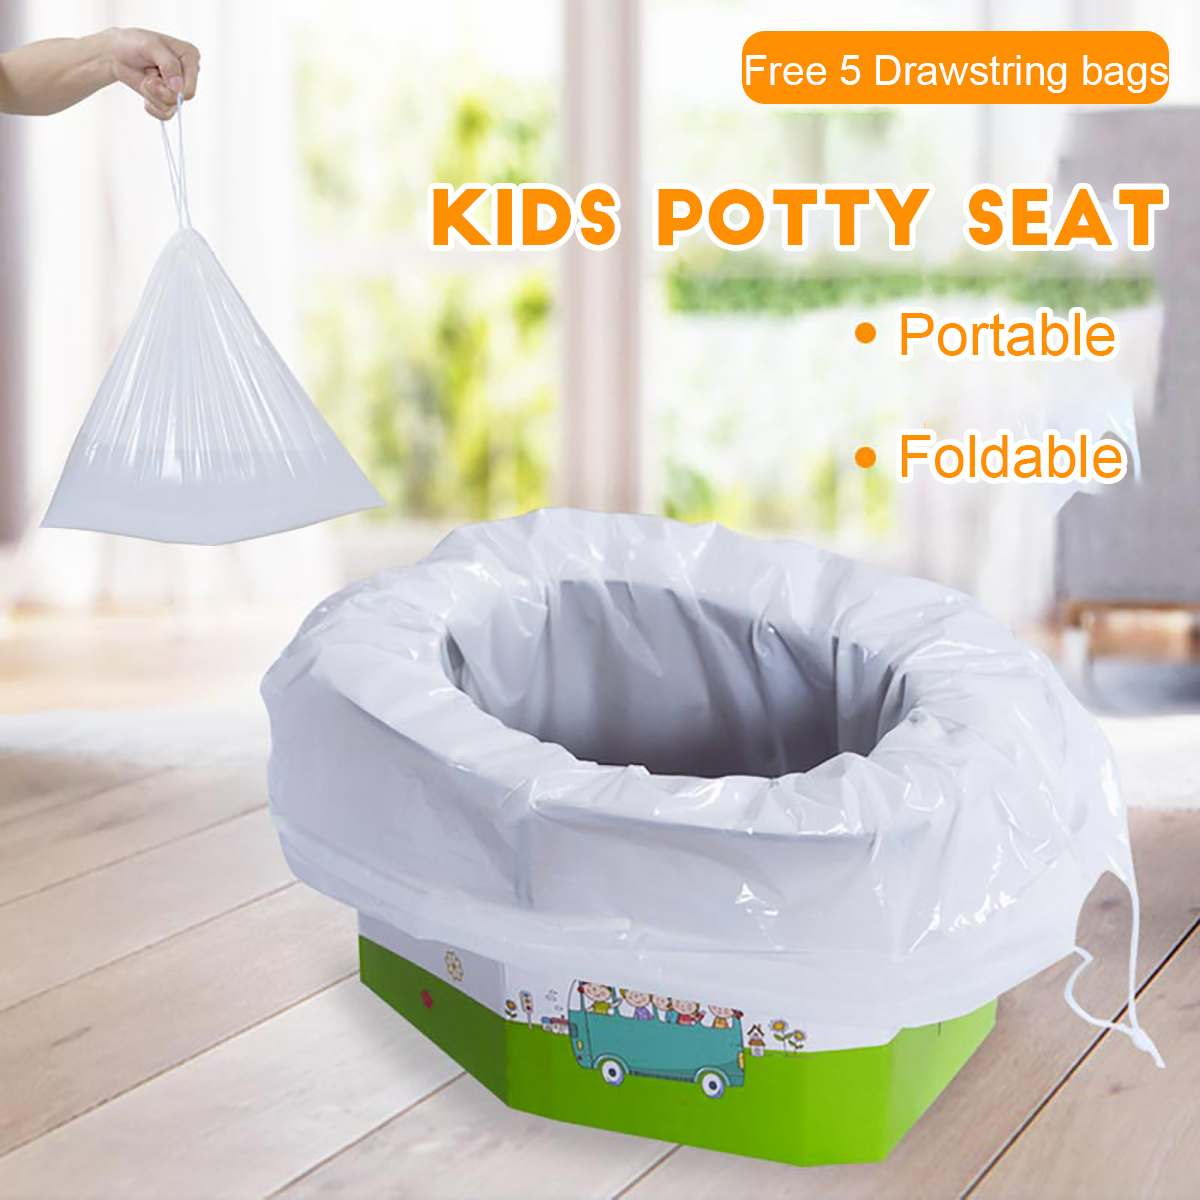 Portable Child Pot Toilet Seat Pot For Travel Outside Car Potty Seat Children's Potty Kids Toilet Potty Toilet With 5 Bags